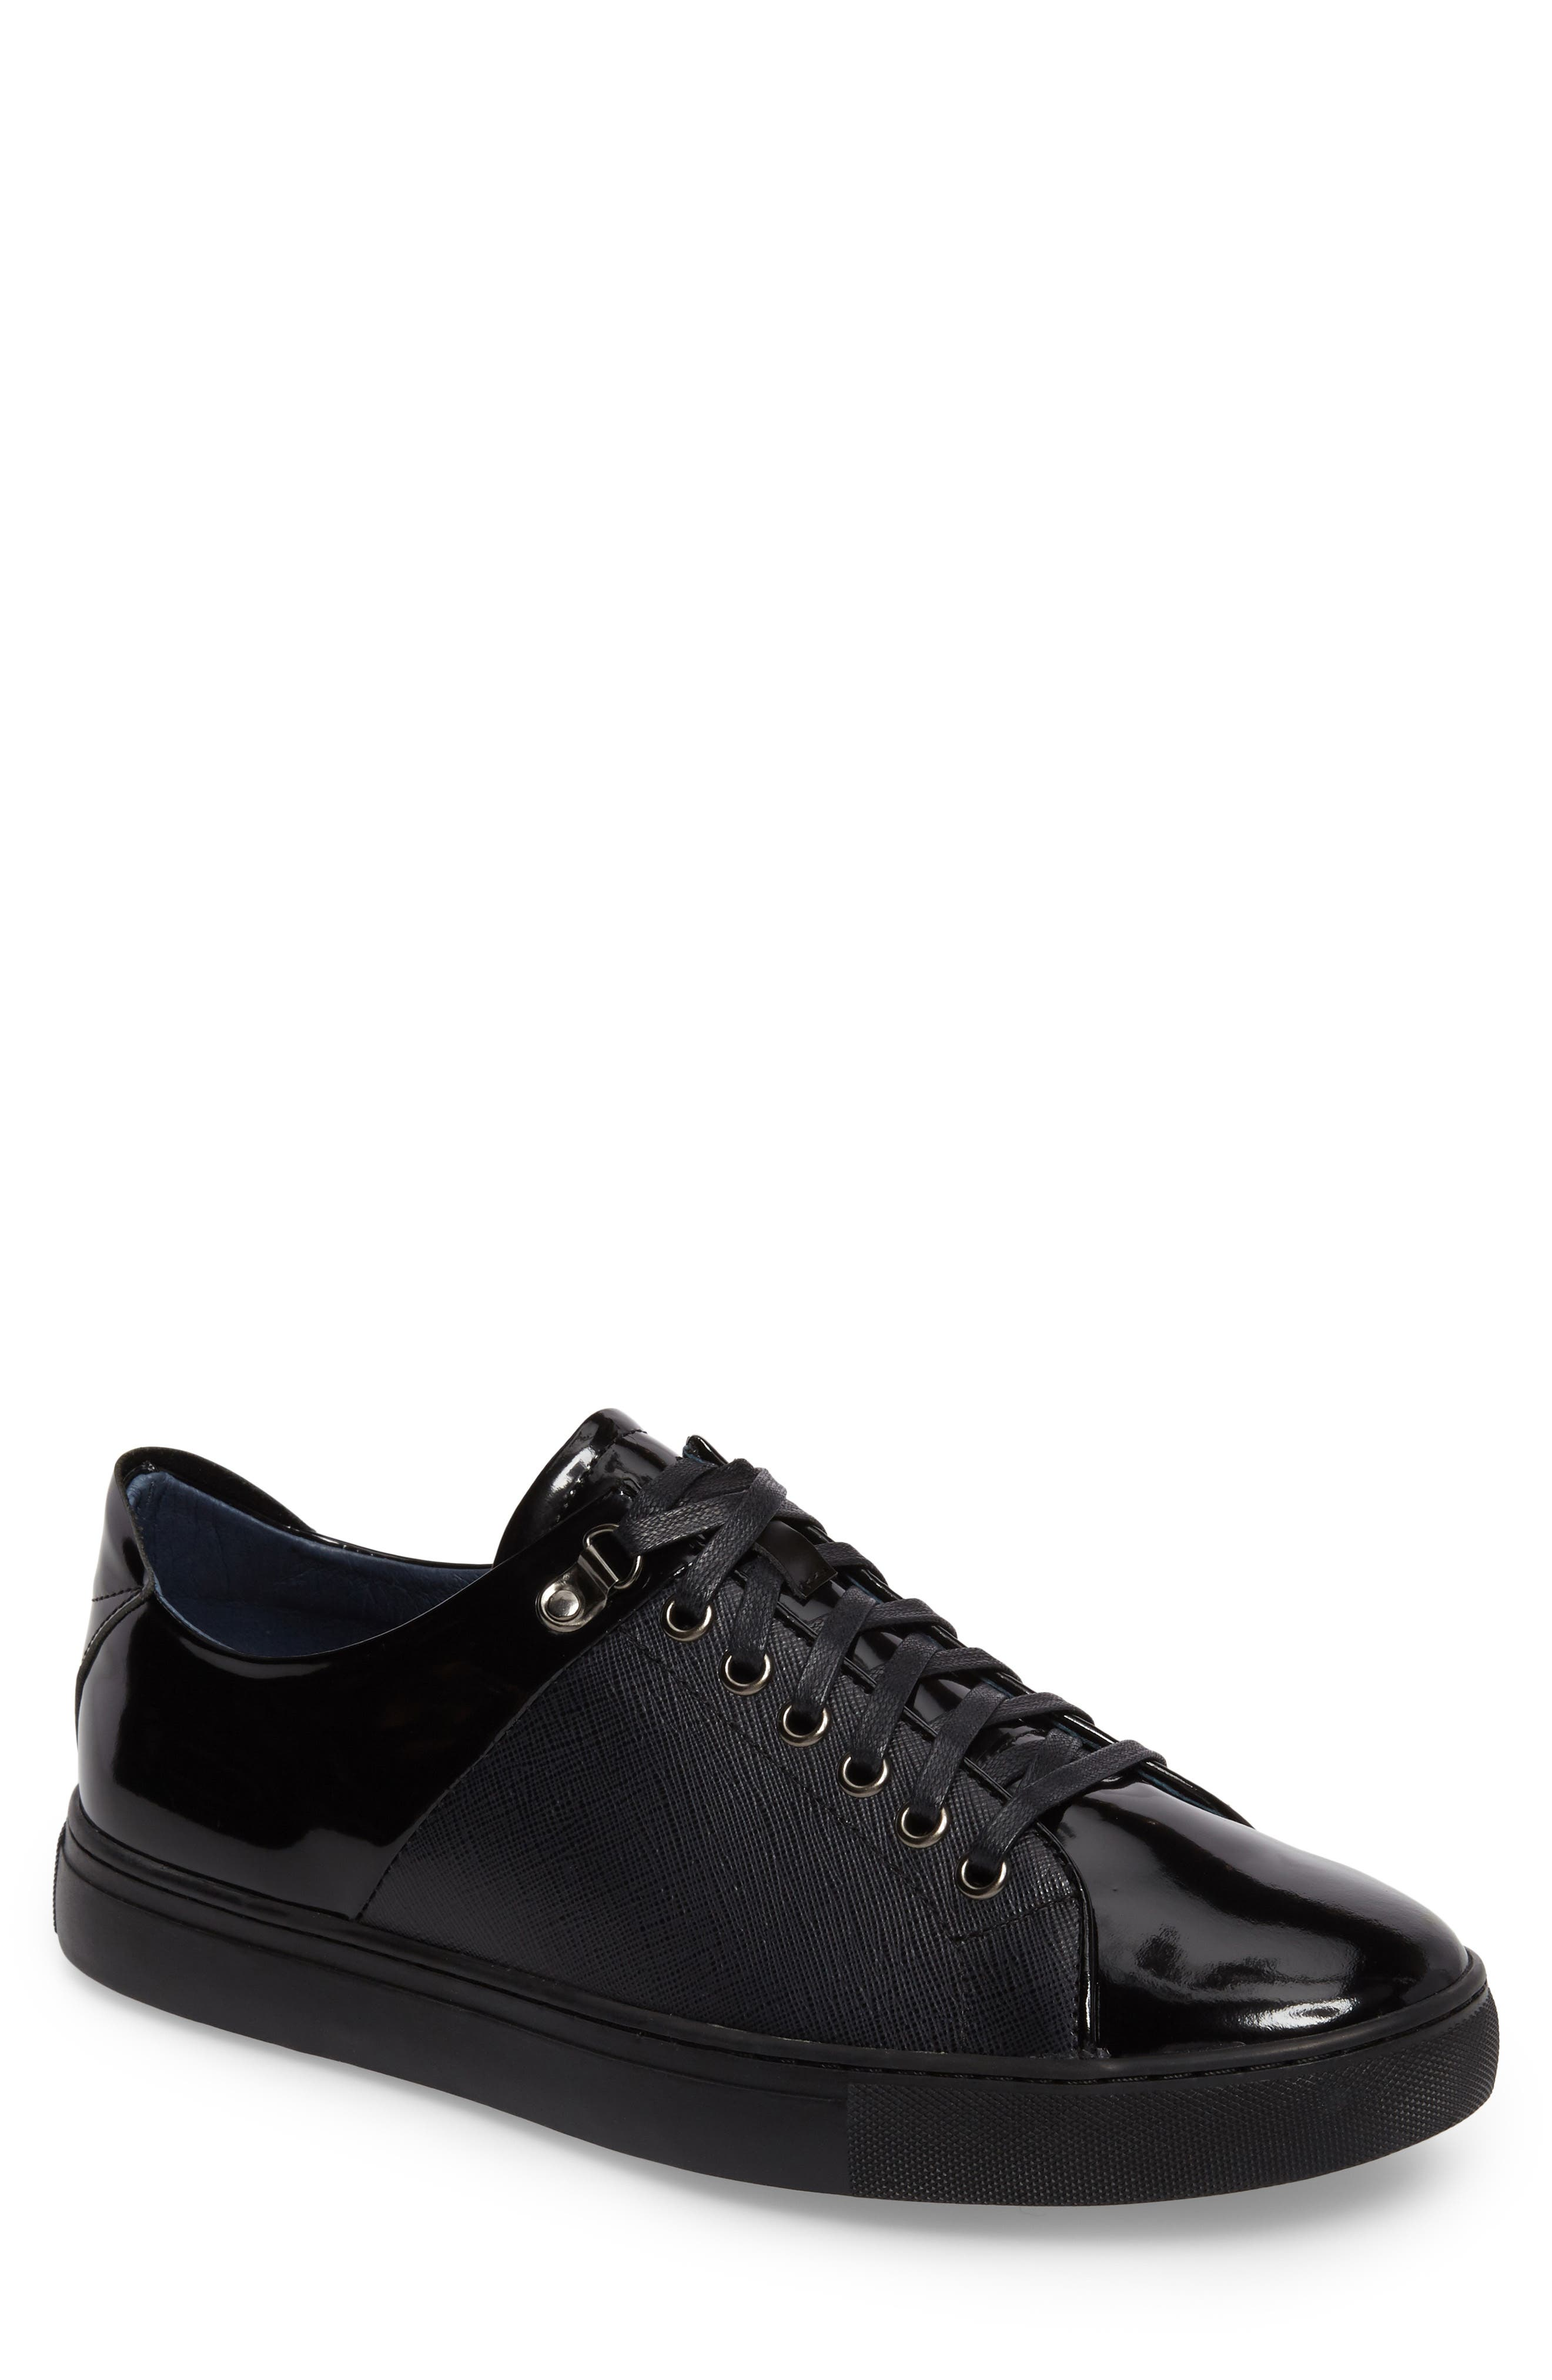 Quidor Low Top Sneaker,                         Main,                         color, Black Leather